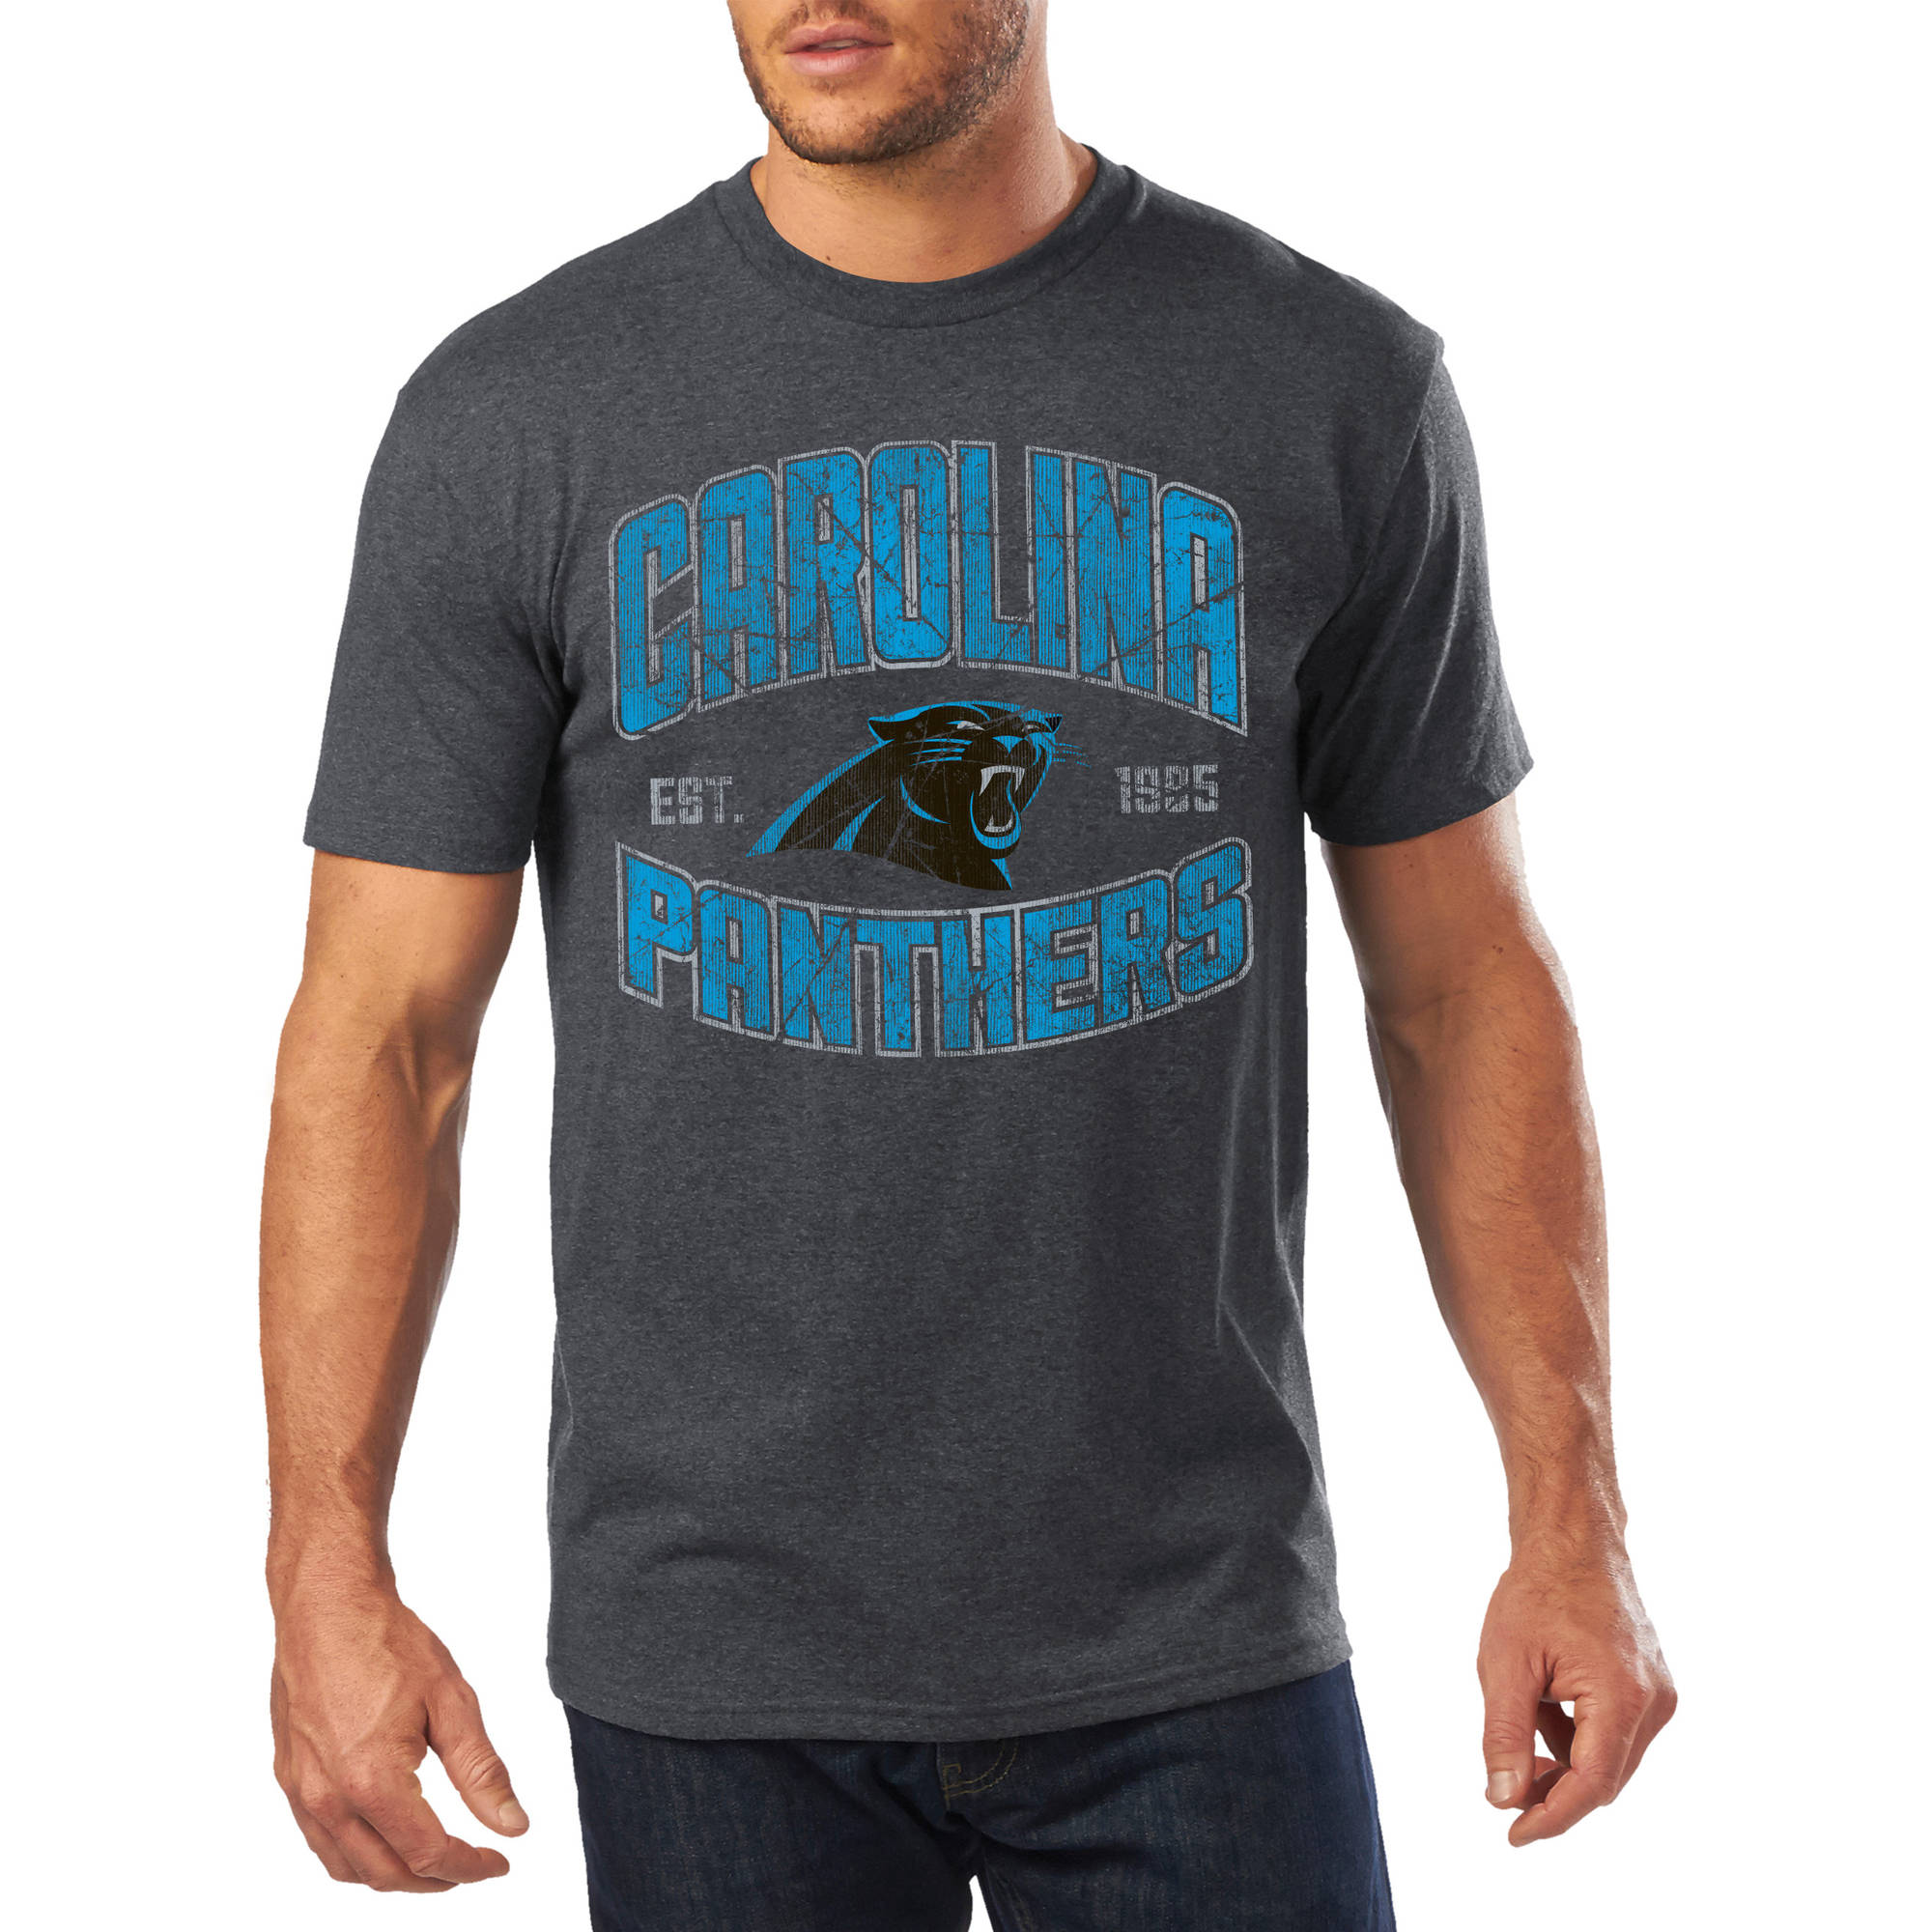 Men's NFL Carolina Panthers Short Sleeve Tee